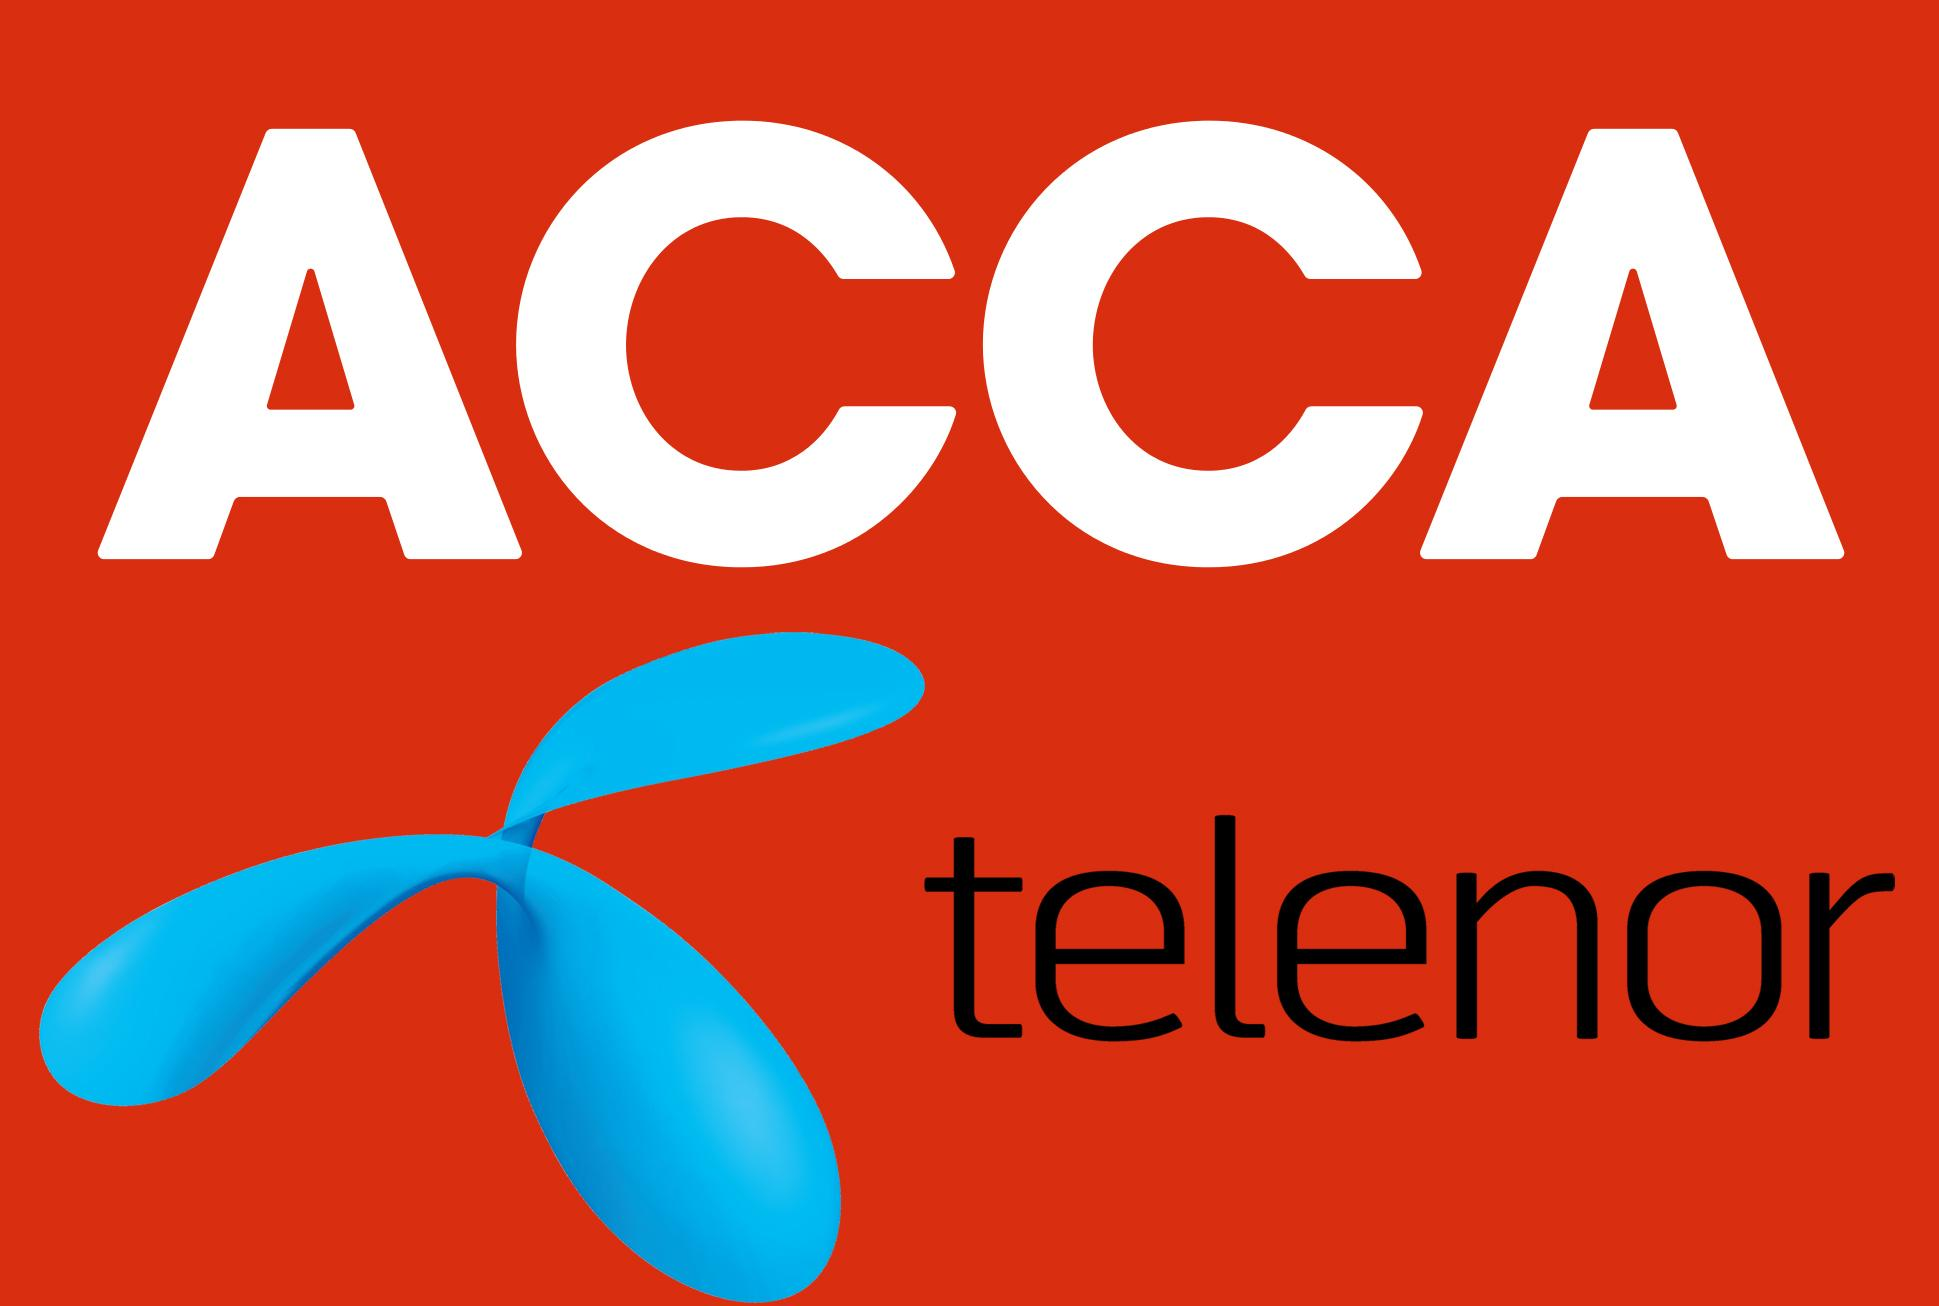 ACCA SIGNS MoU WITH TELENOR TO PROMOTE SHARED SERVICES AMONG FINANCE COMMUNITY